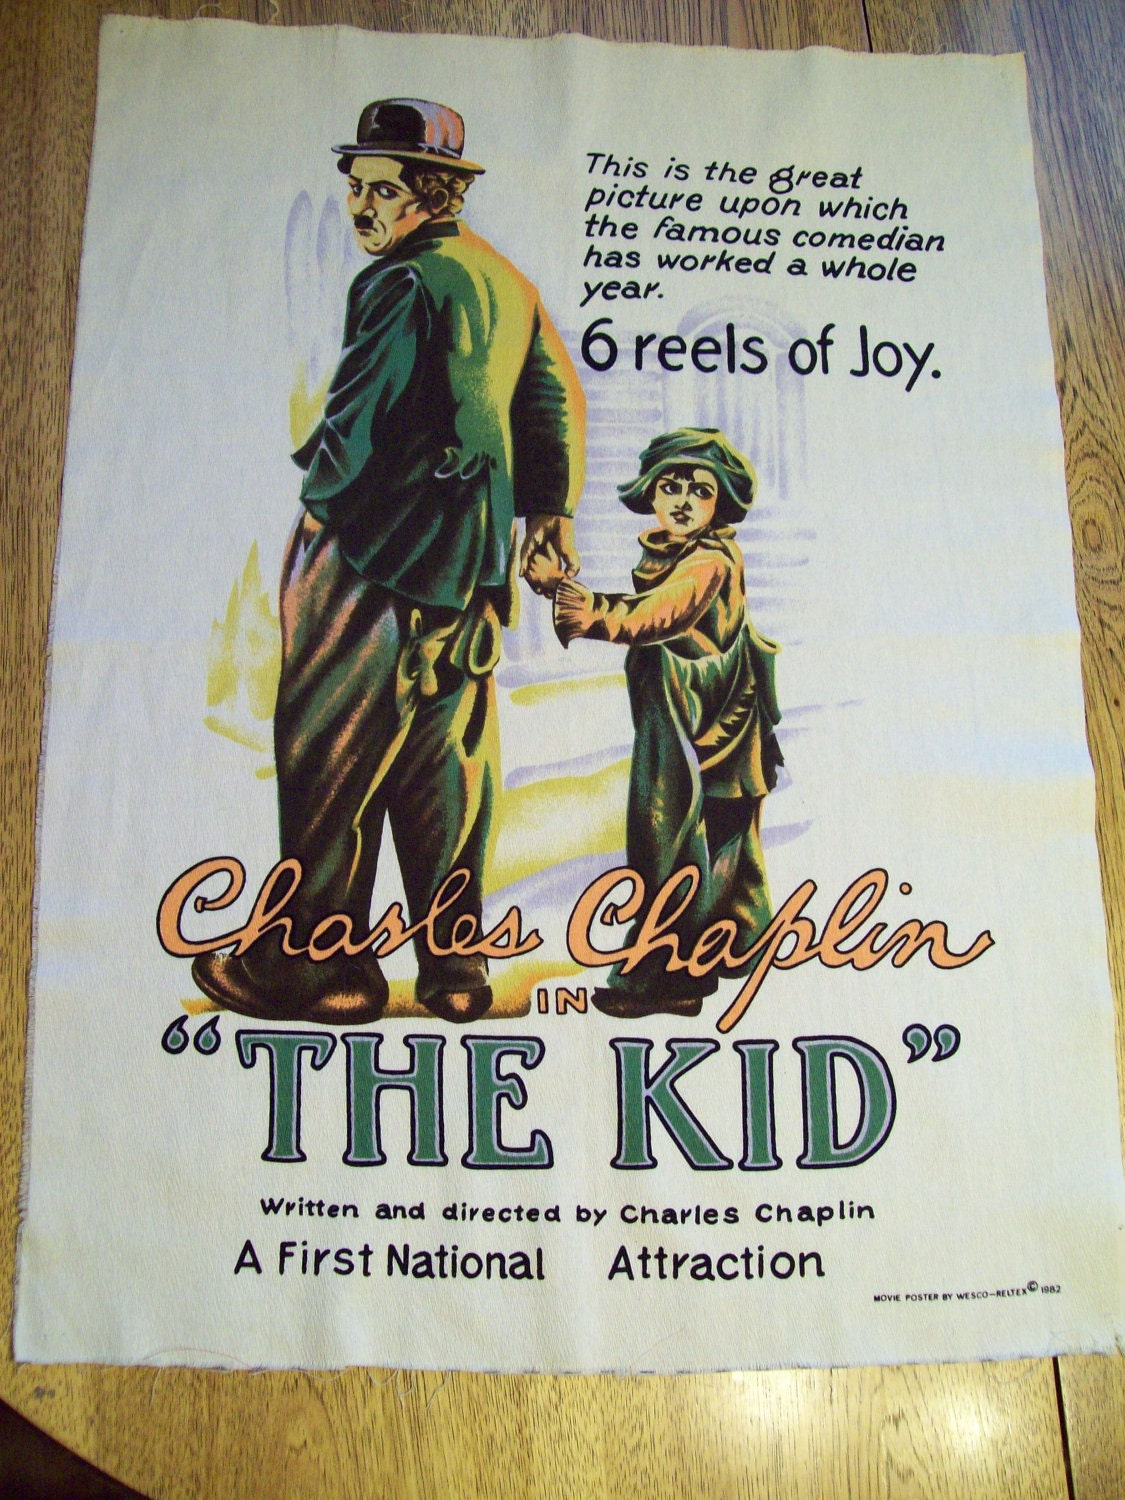 Fabric CHARLIE CHAPLIN Movie Poster from The Kid Retro 1980s